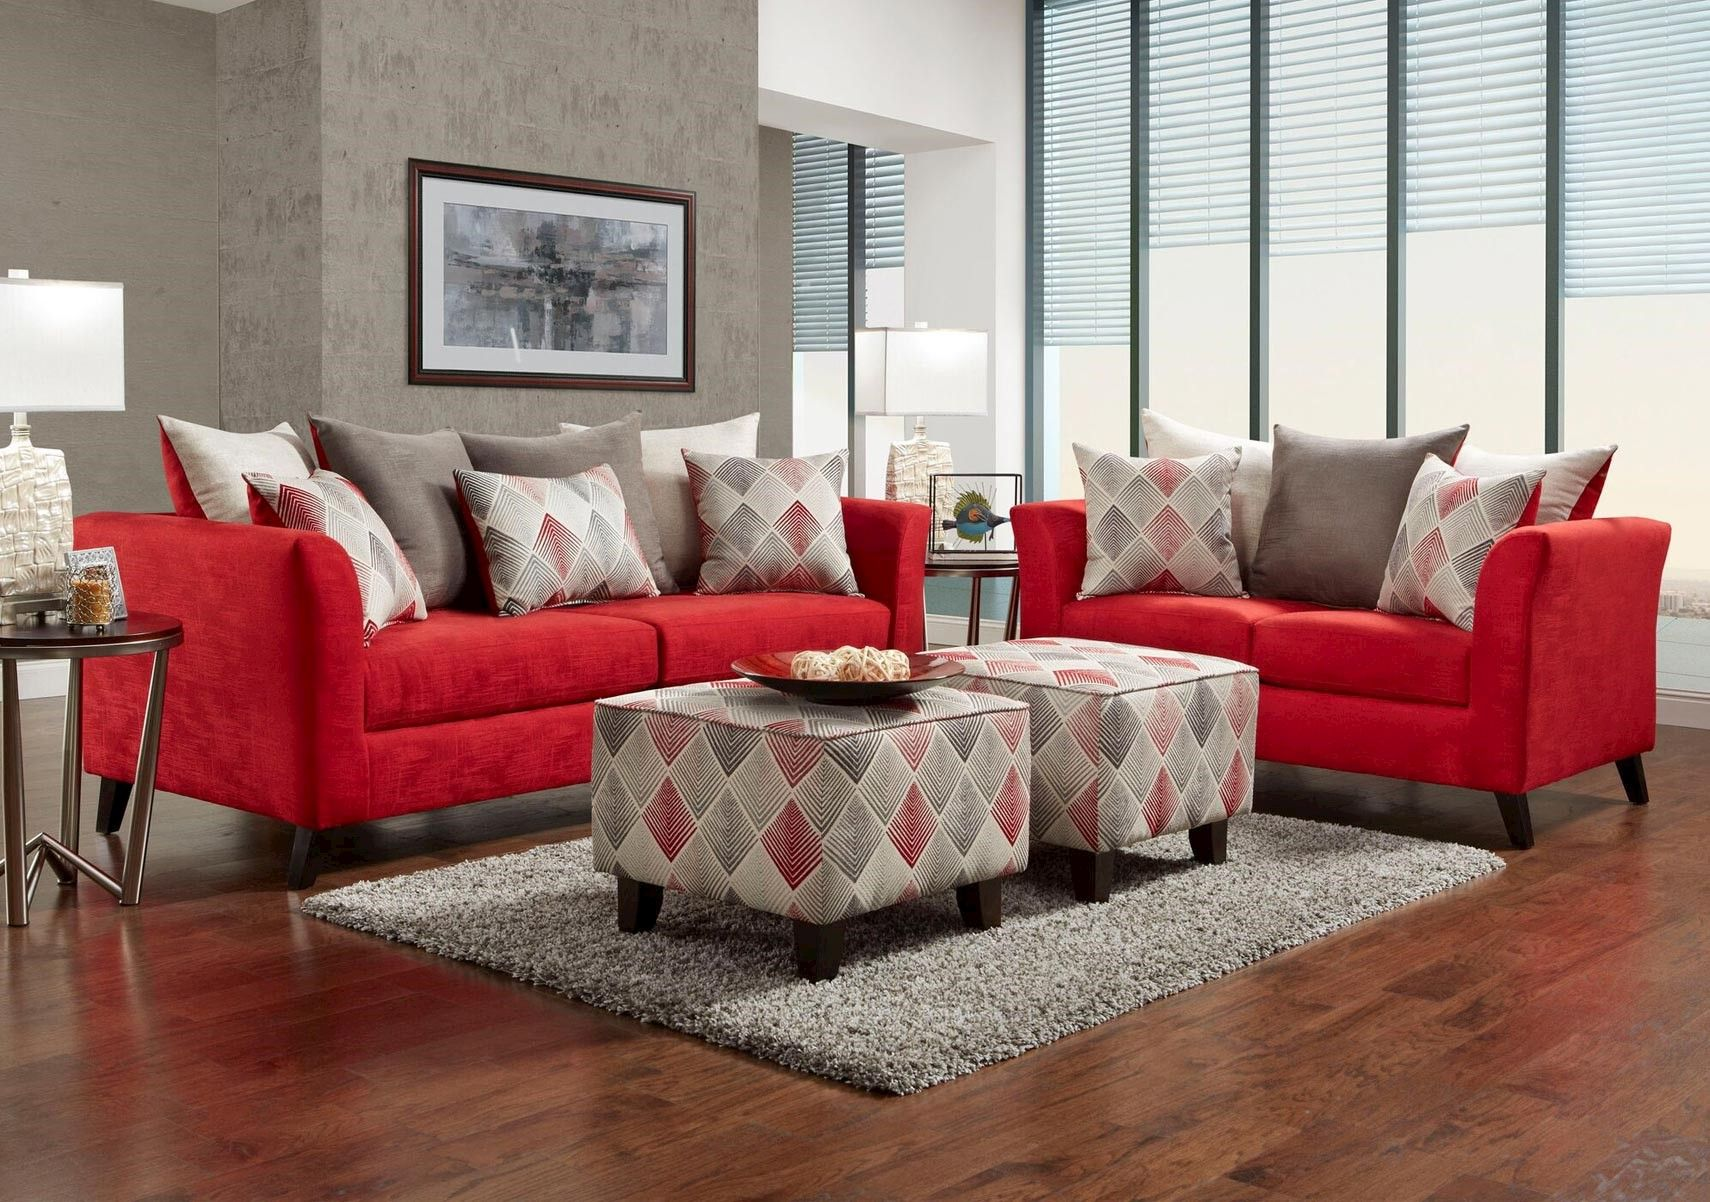 Lacks Stix 2 Pc Red Living Room Set Red Couch Living Room